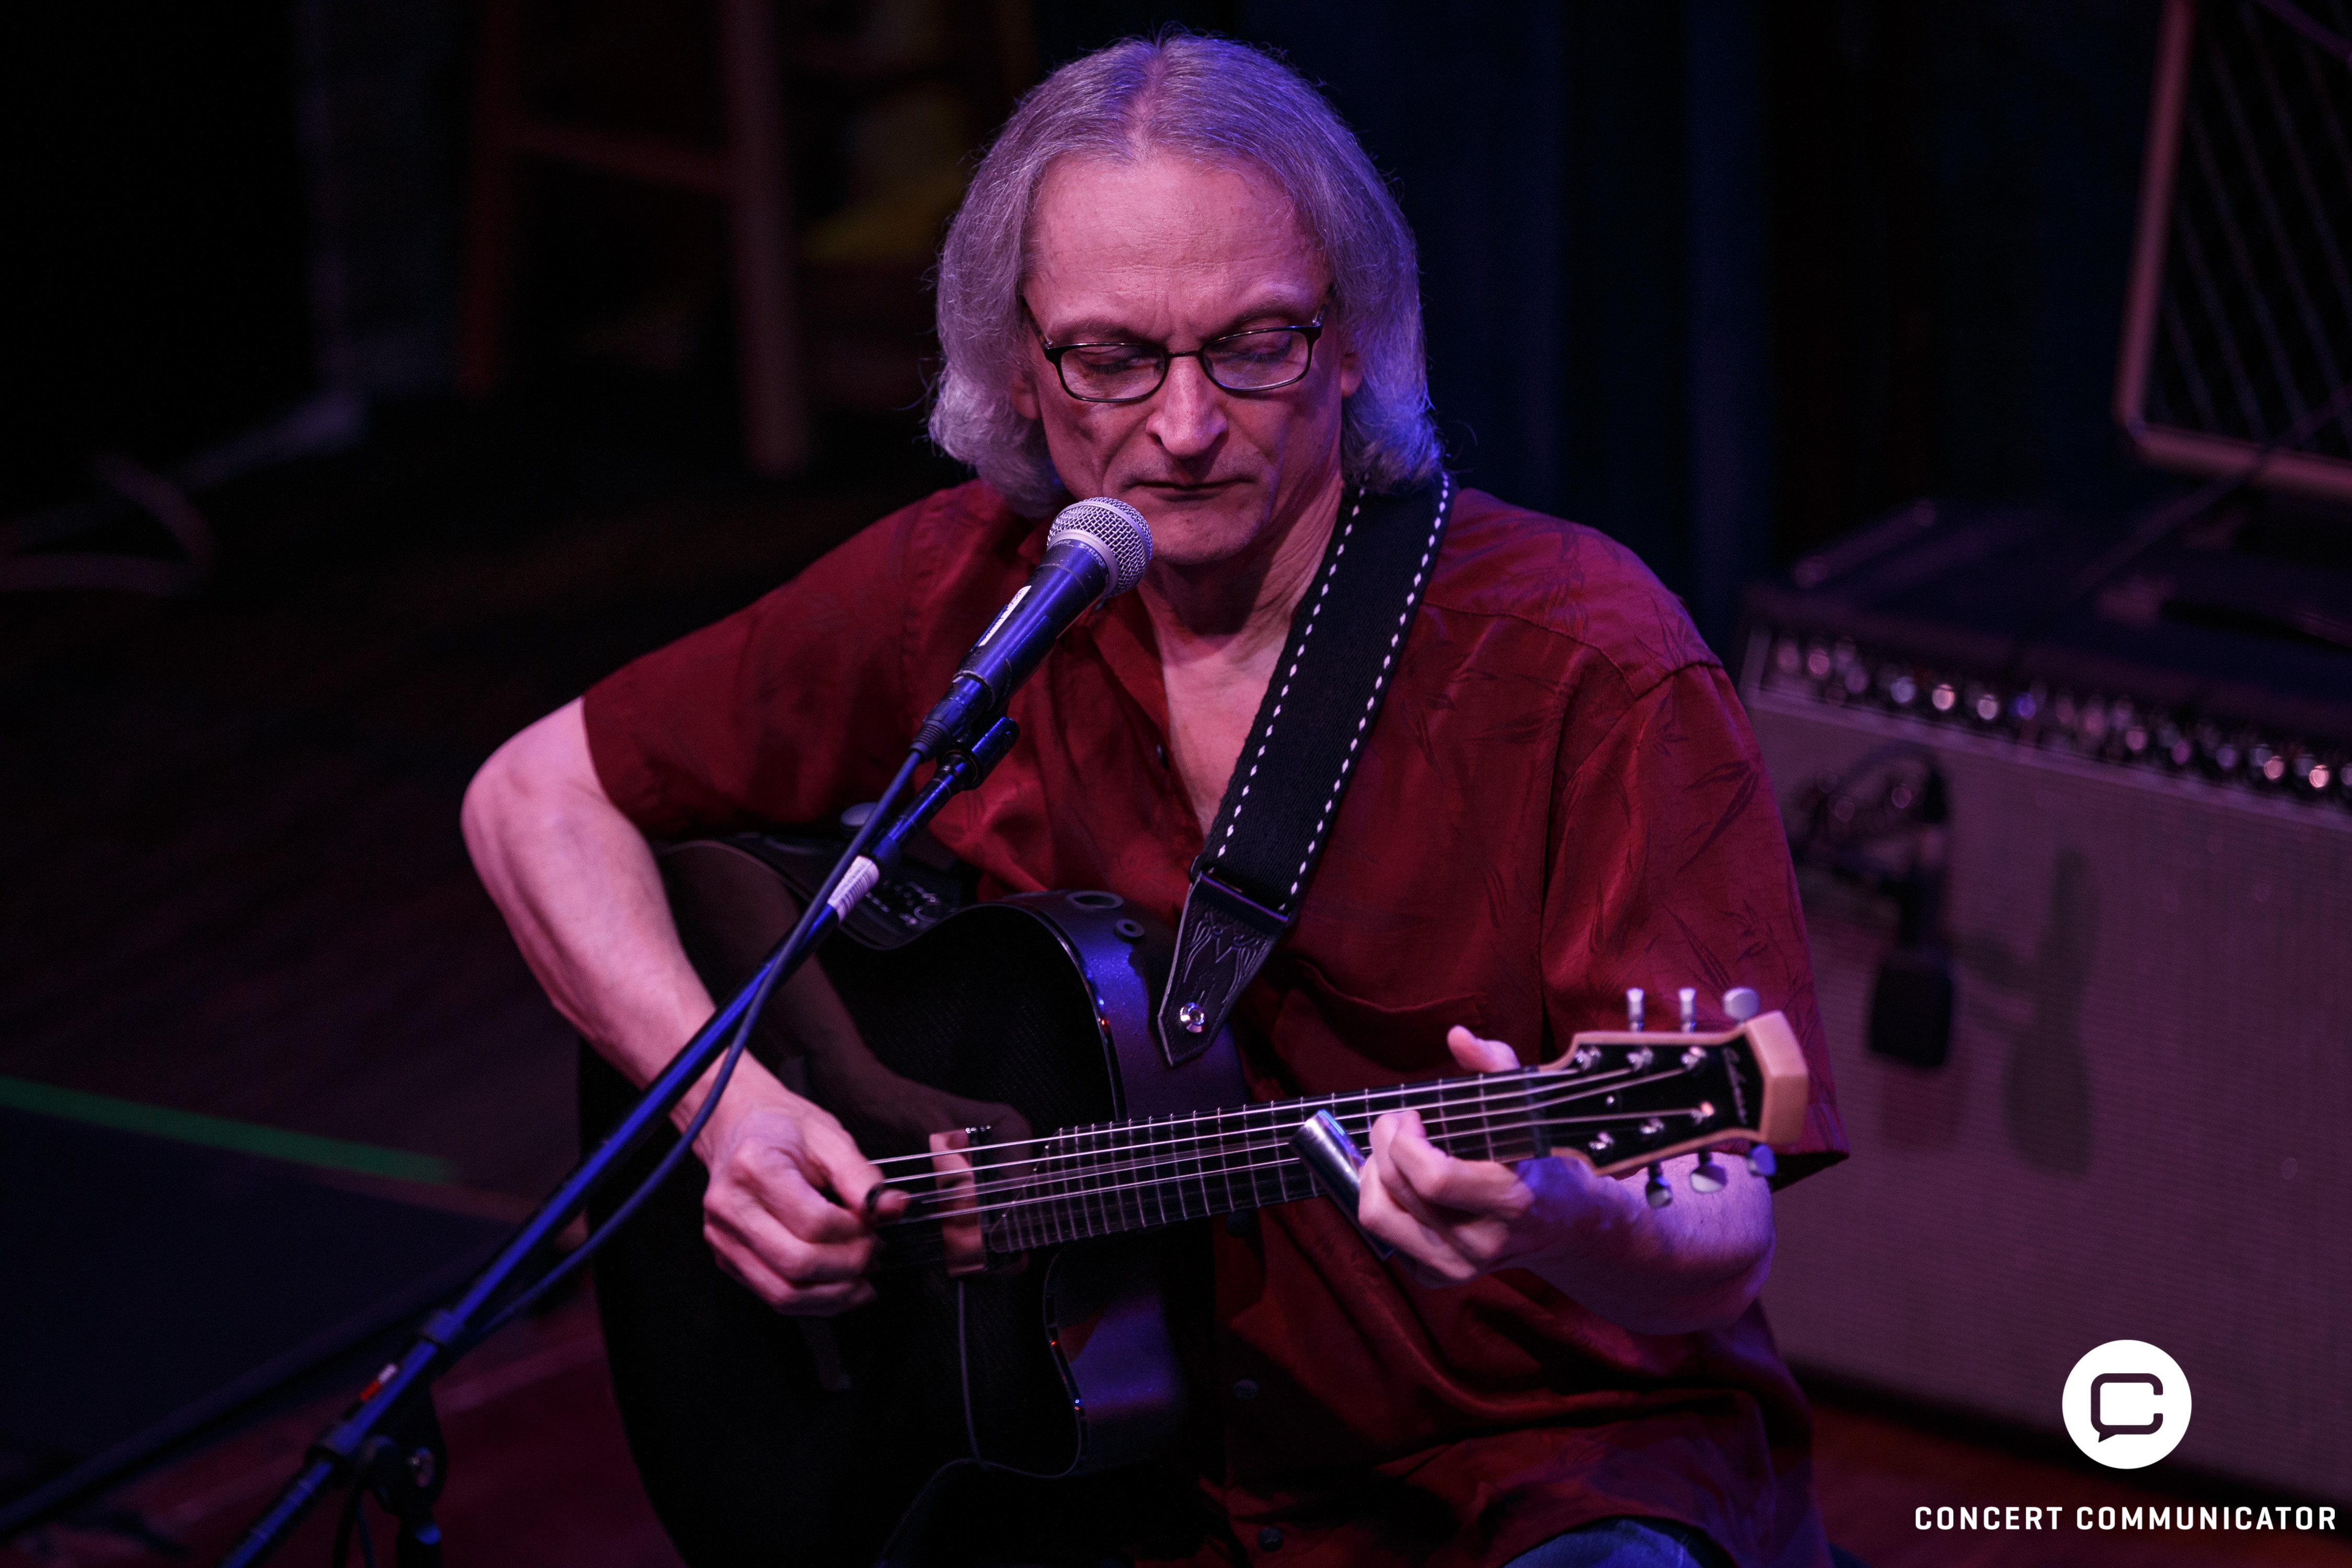 Sonny Landreth @ Dakota Jazz Club